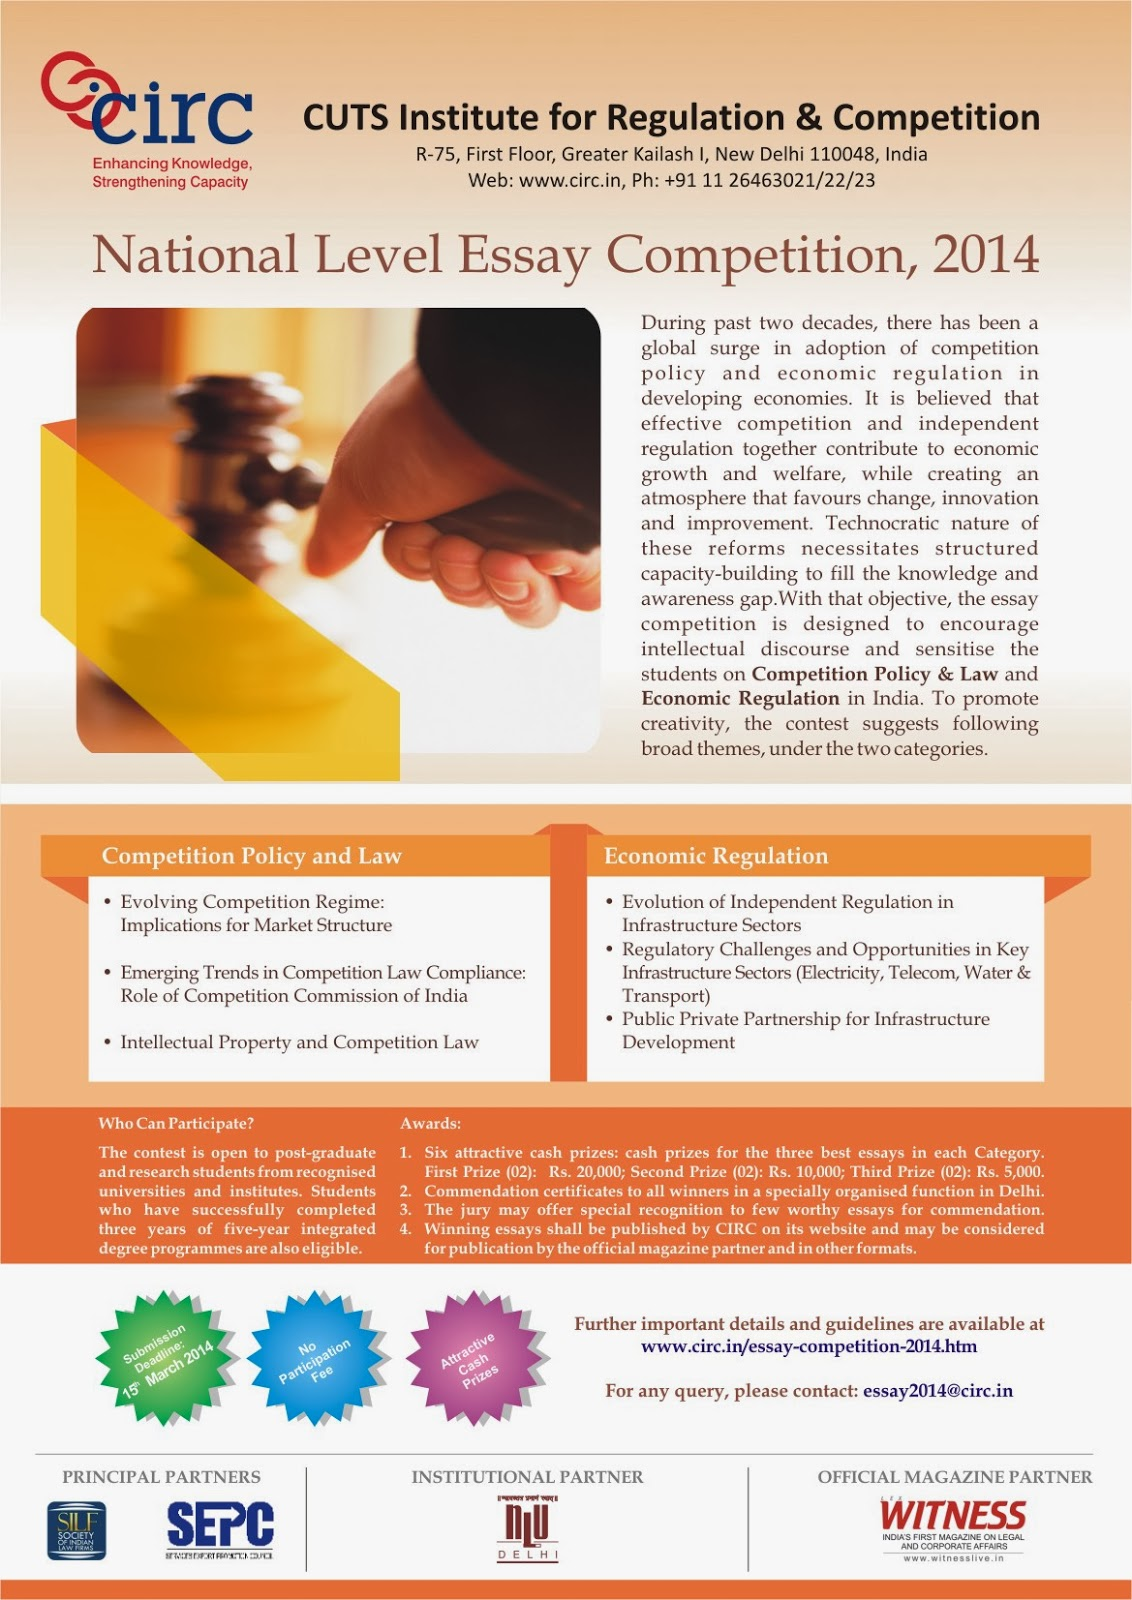 National Level Legal Essay Competition @ Indore Institute Of Law : Submit Before 7th July 2018